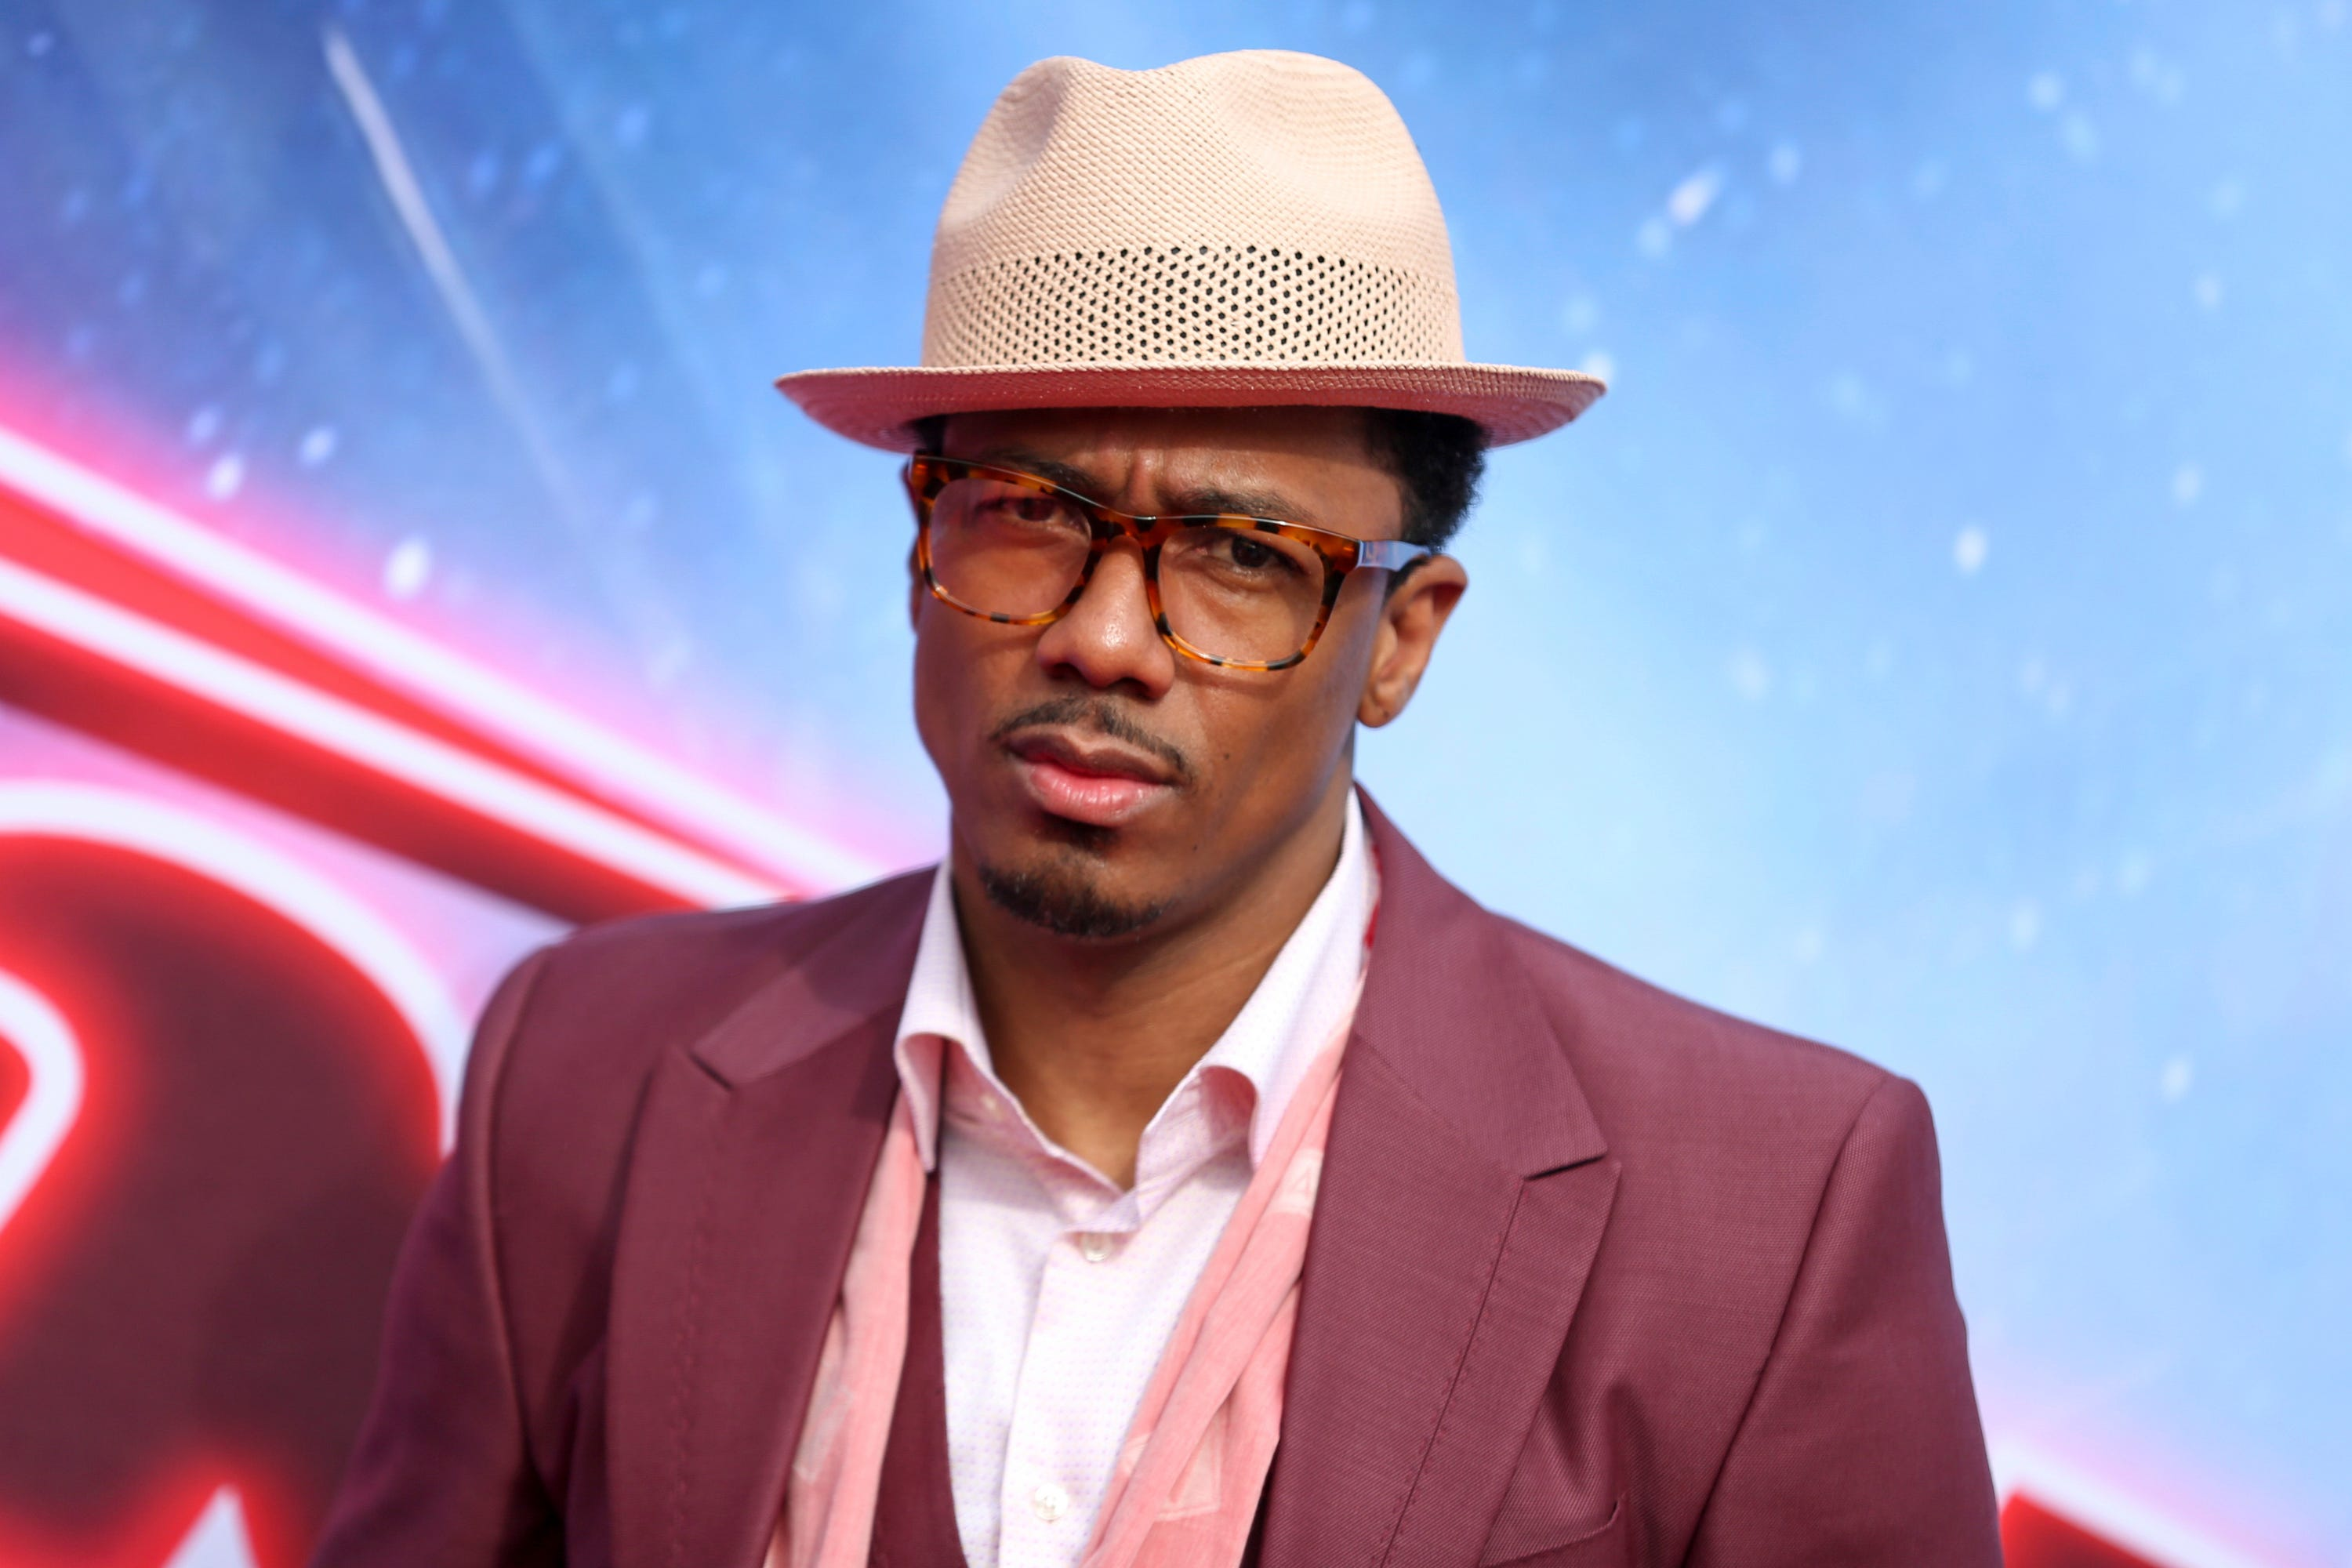 Nick Cannon calls out R. Kelly and music industry 'darkness,' apologizes 'on behalf of all men'